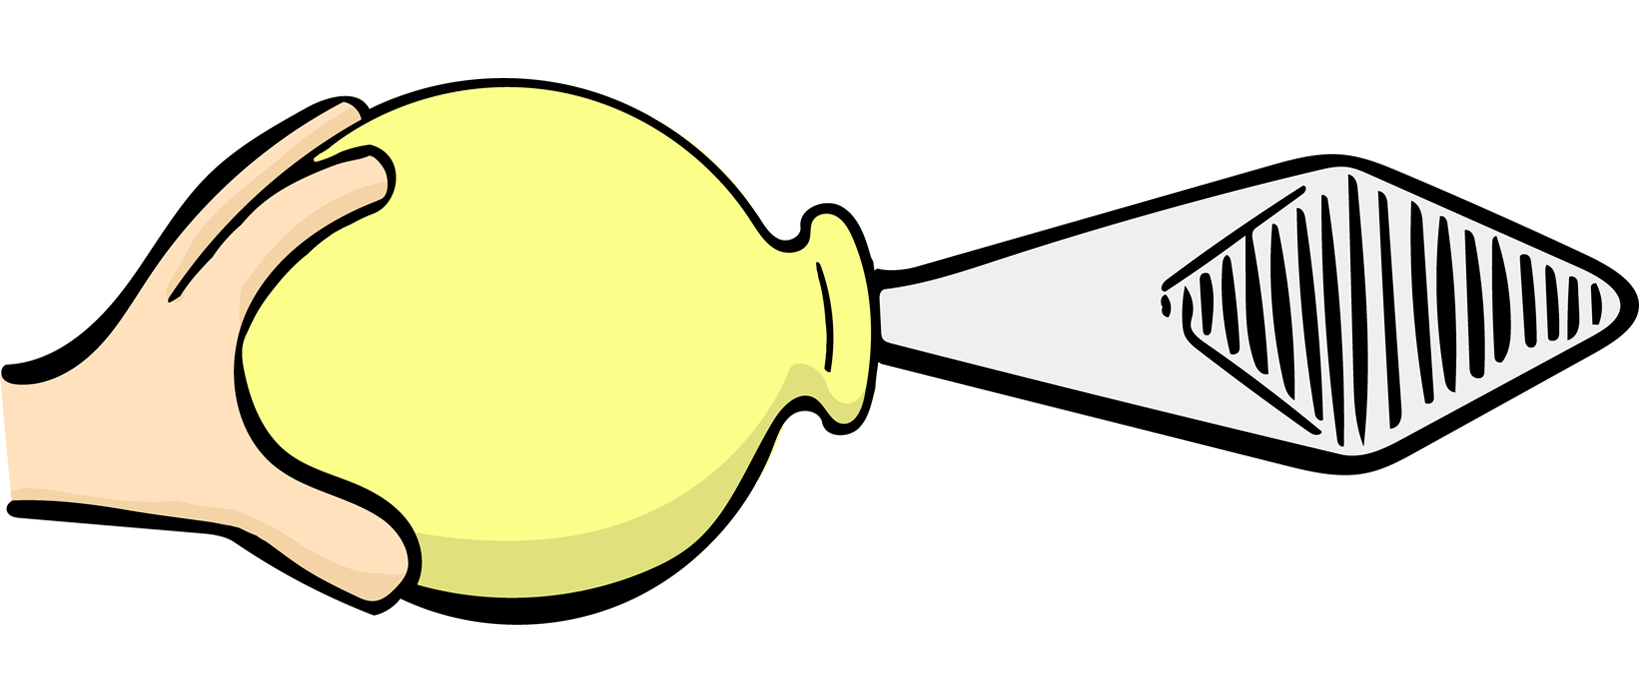 User experience and the. Screwdriver clipart tip